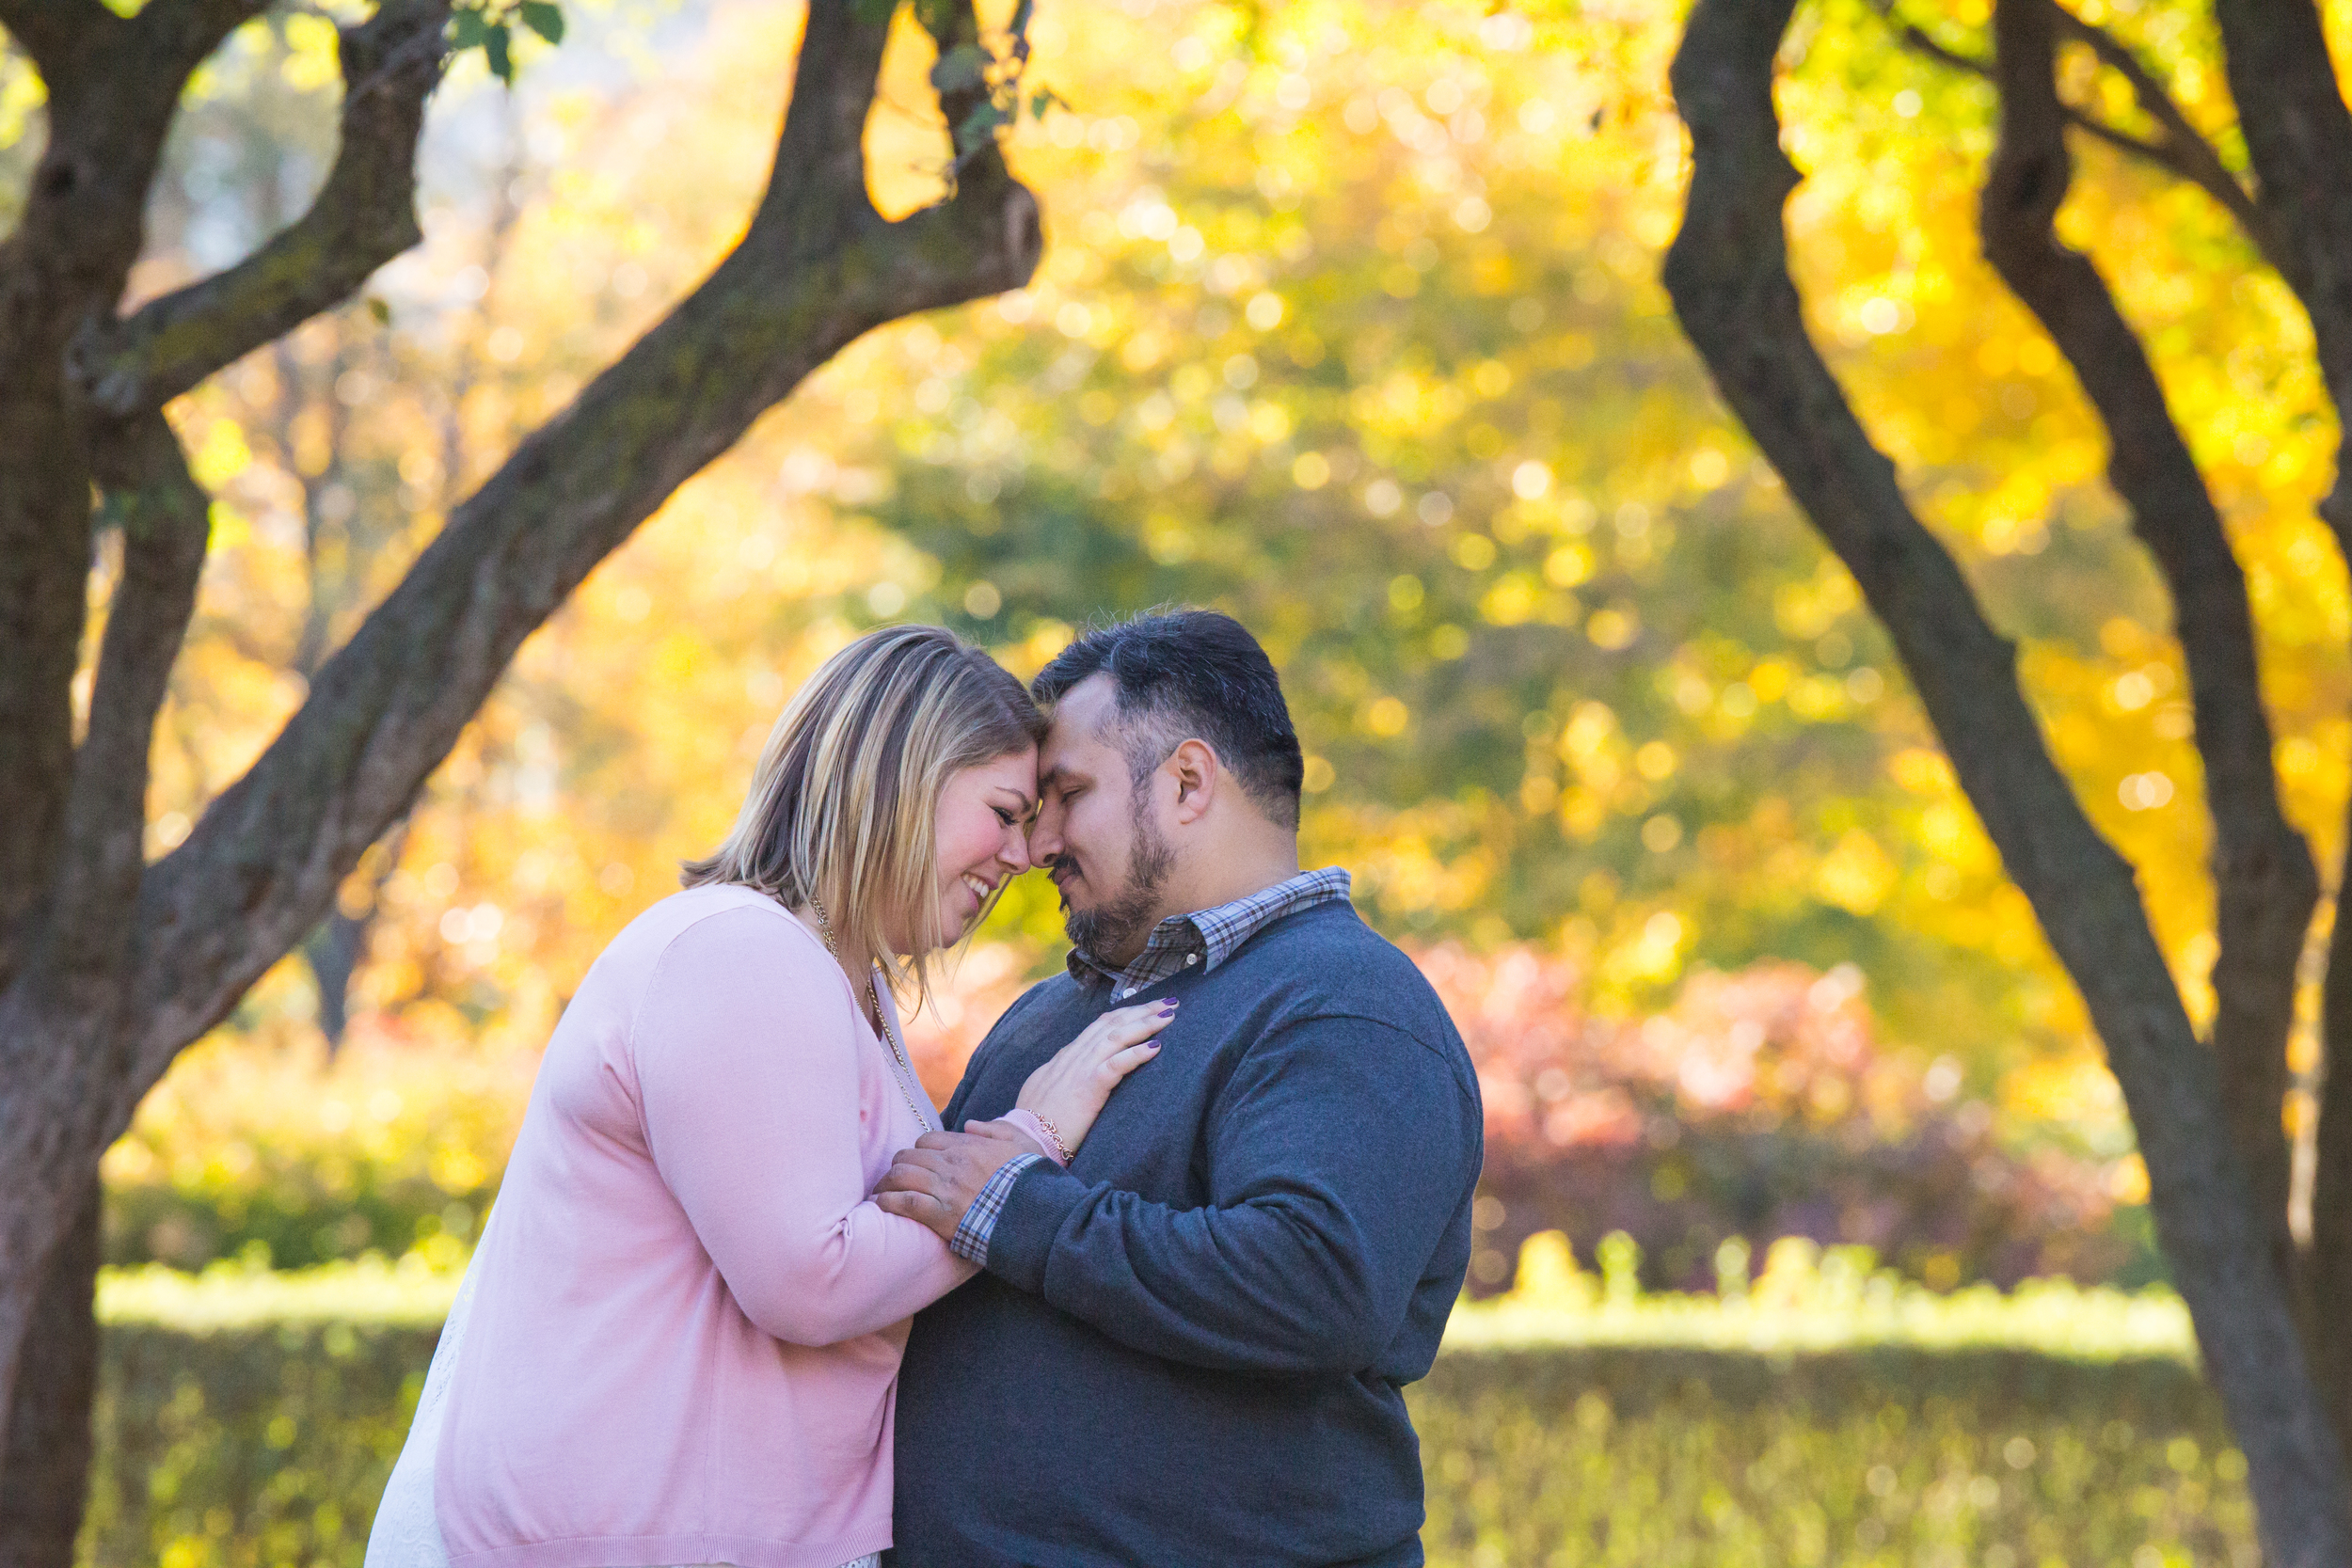 Nickie & Hector_Chicago Engagement_Oct 2015 (35 of 44).jpg